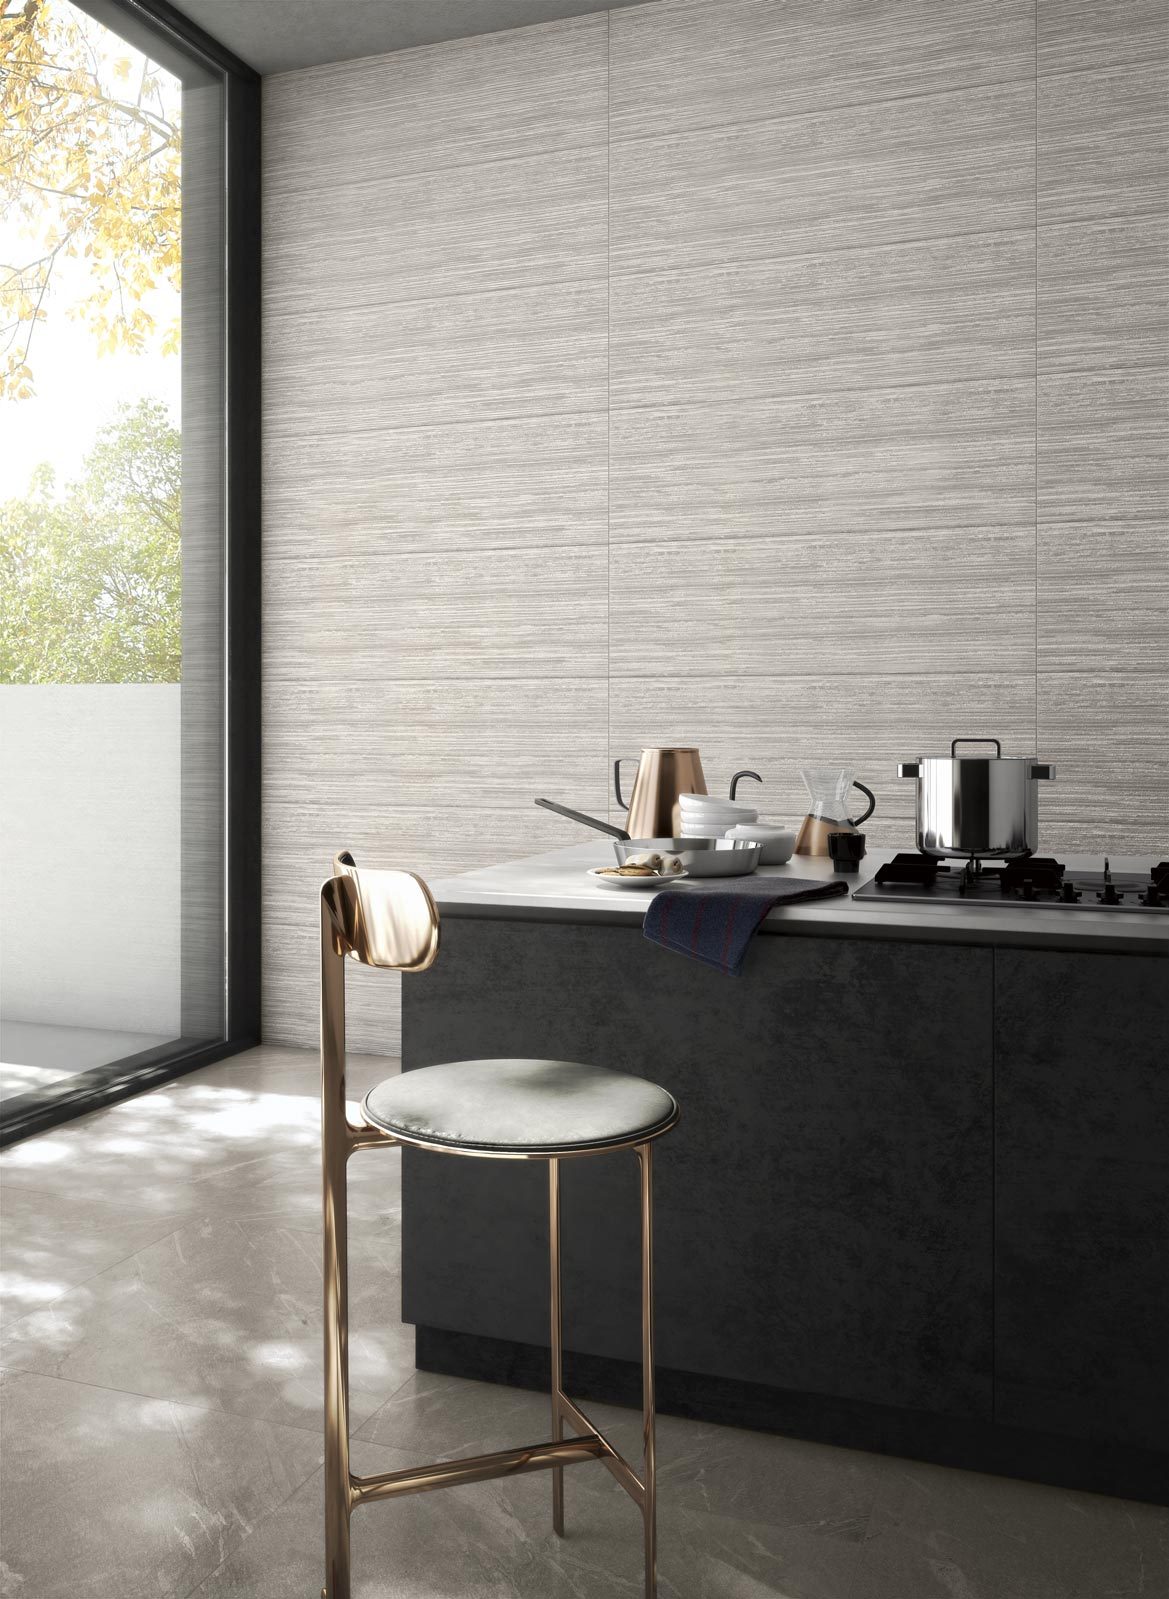 Tactile collection neutral and natural shades ragno tactile ceramic tiles ragno8781 dailygadgetfo Choice Image